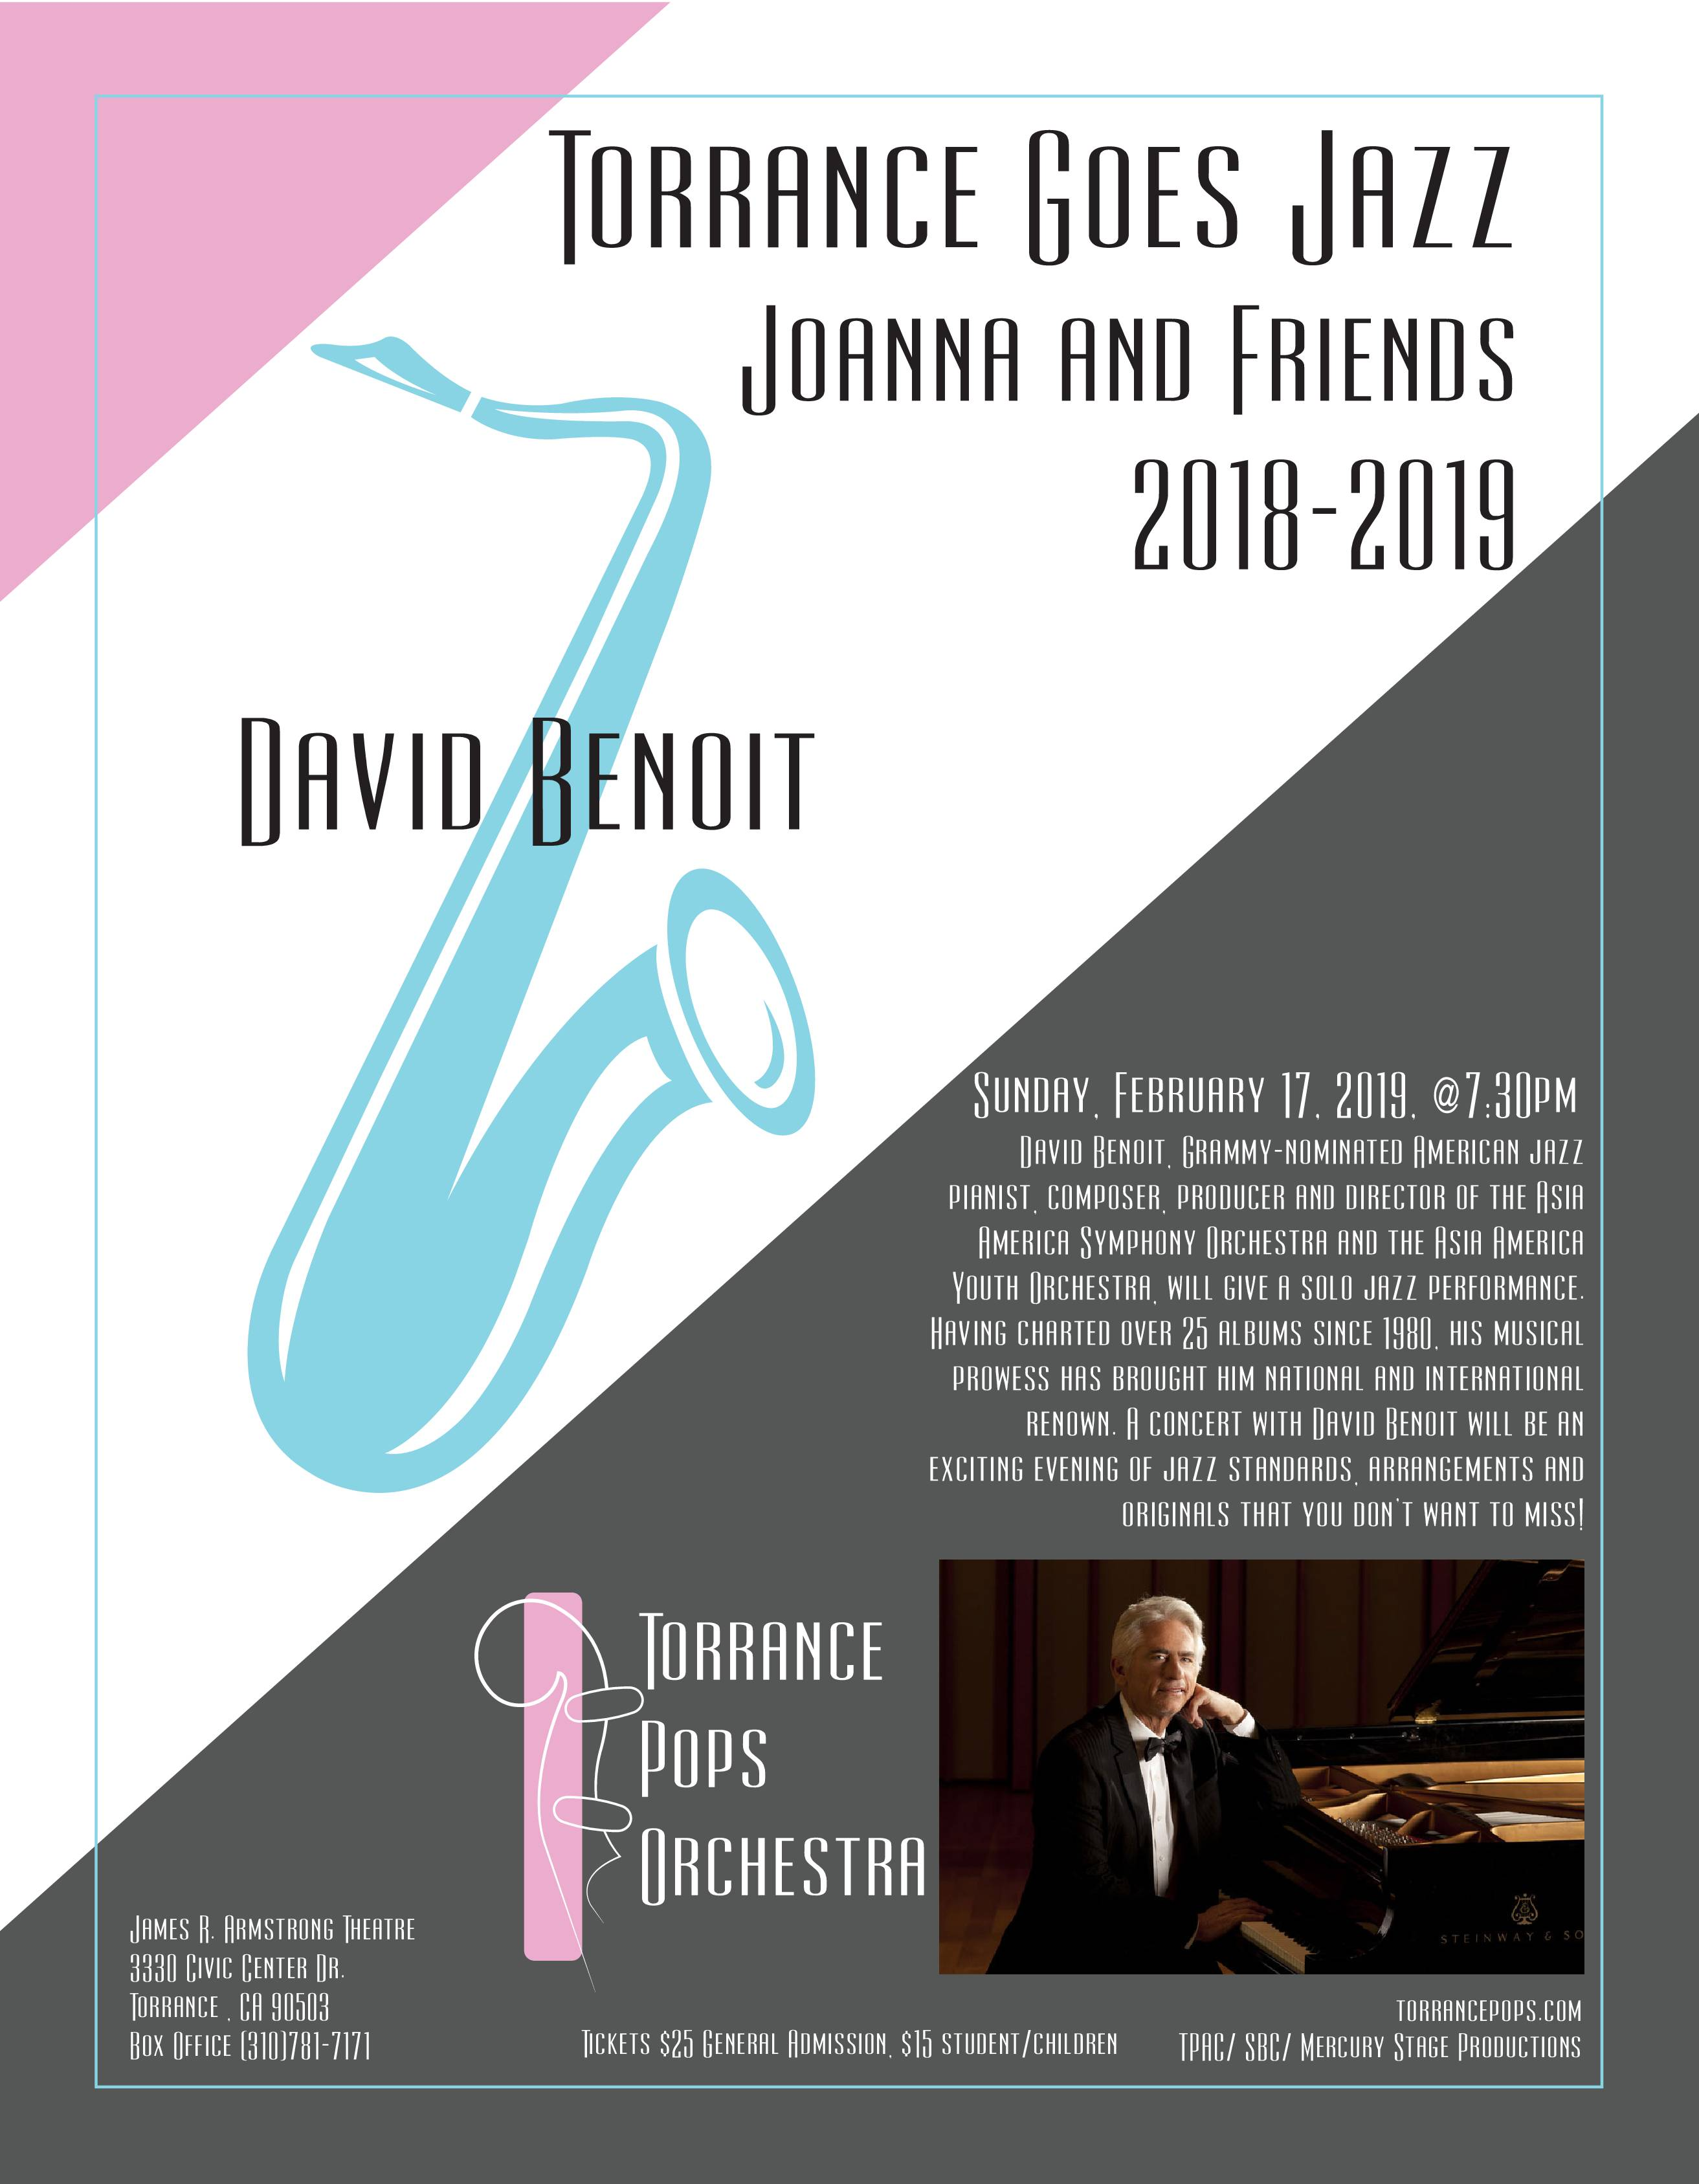 Torrance Goes Jazz - Joanna and Friends @ James R Armstrong Theatre | Torrance | California | United States